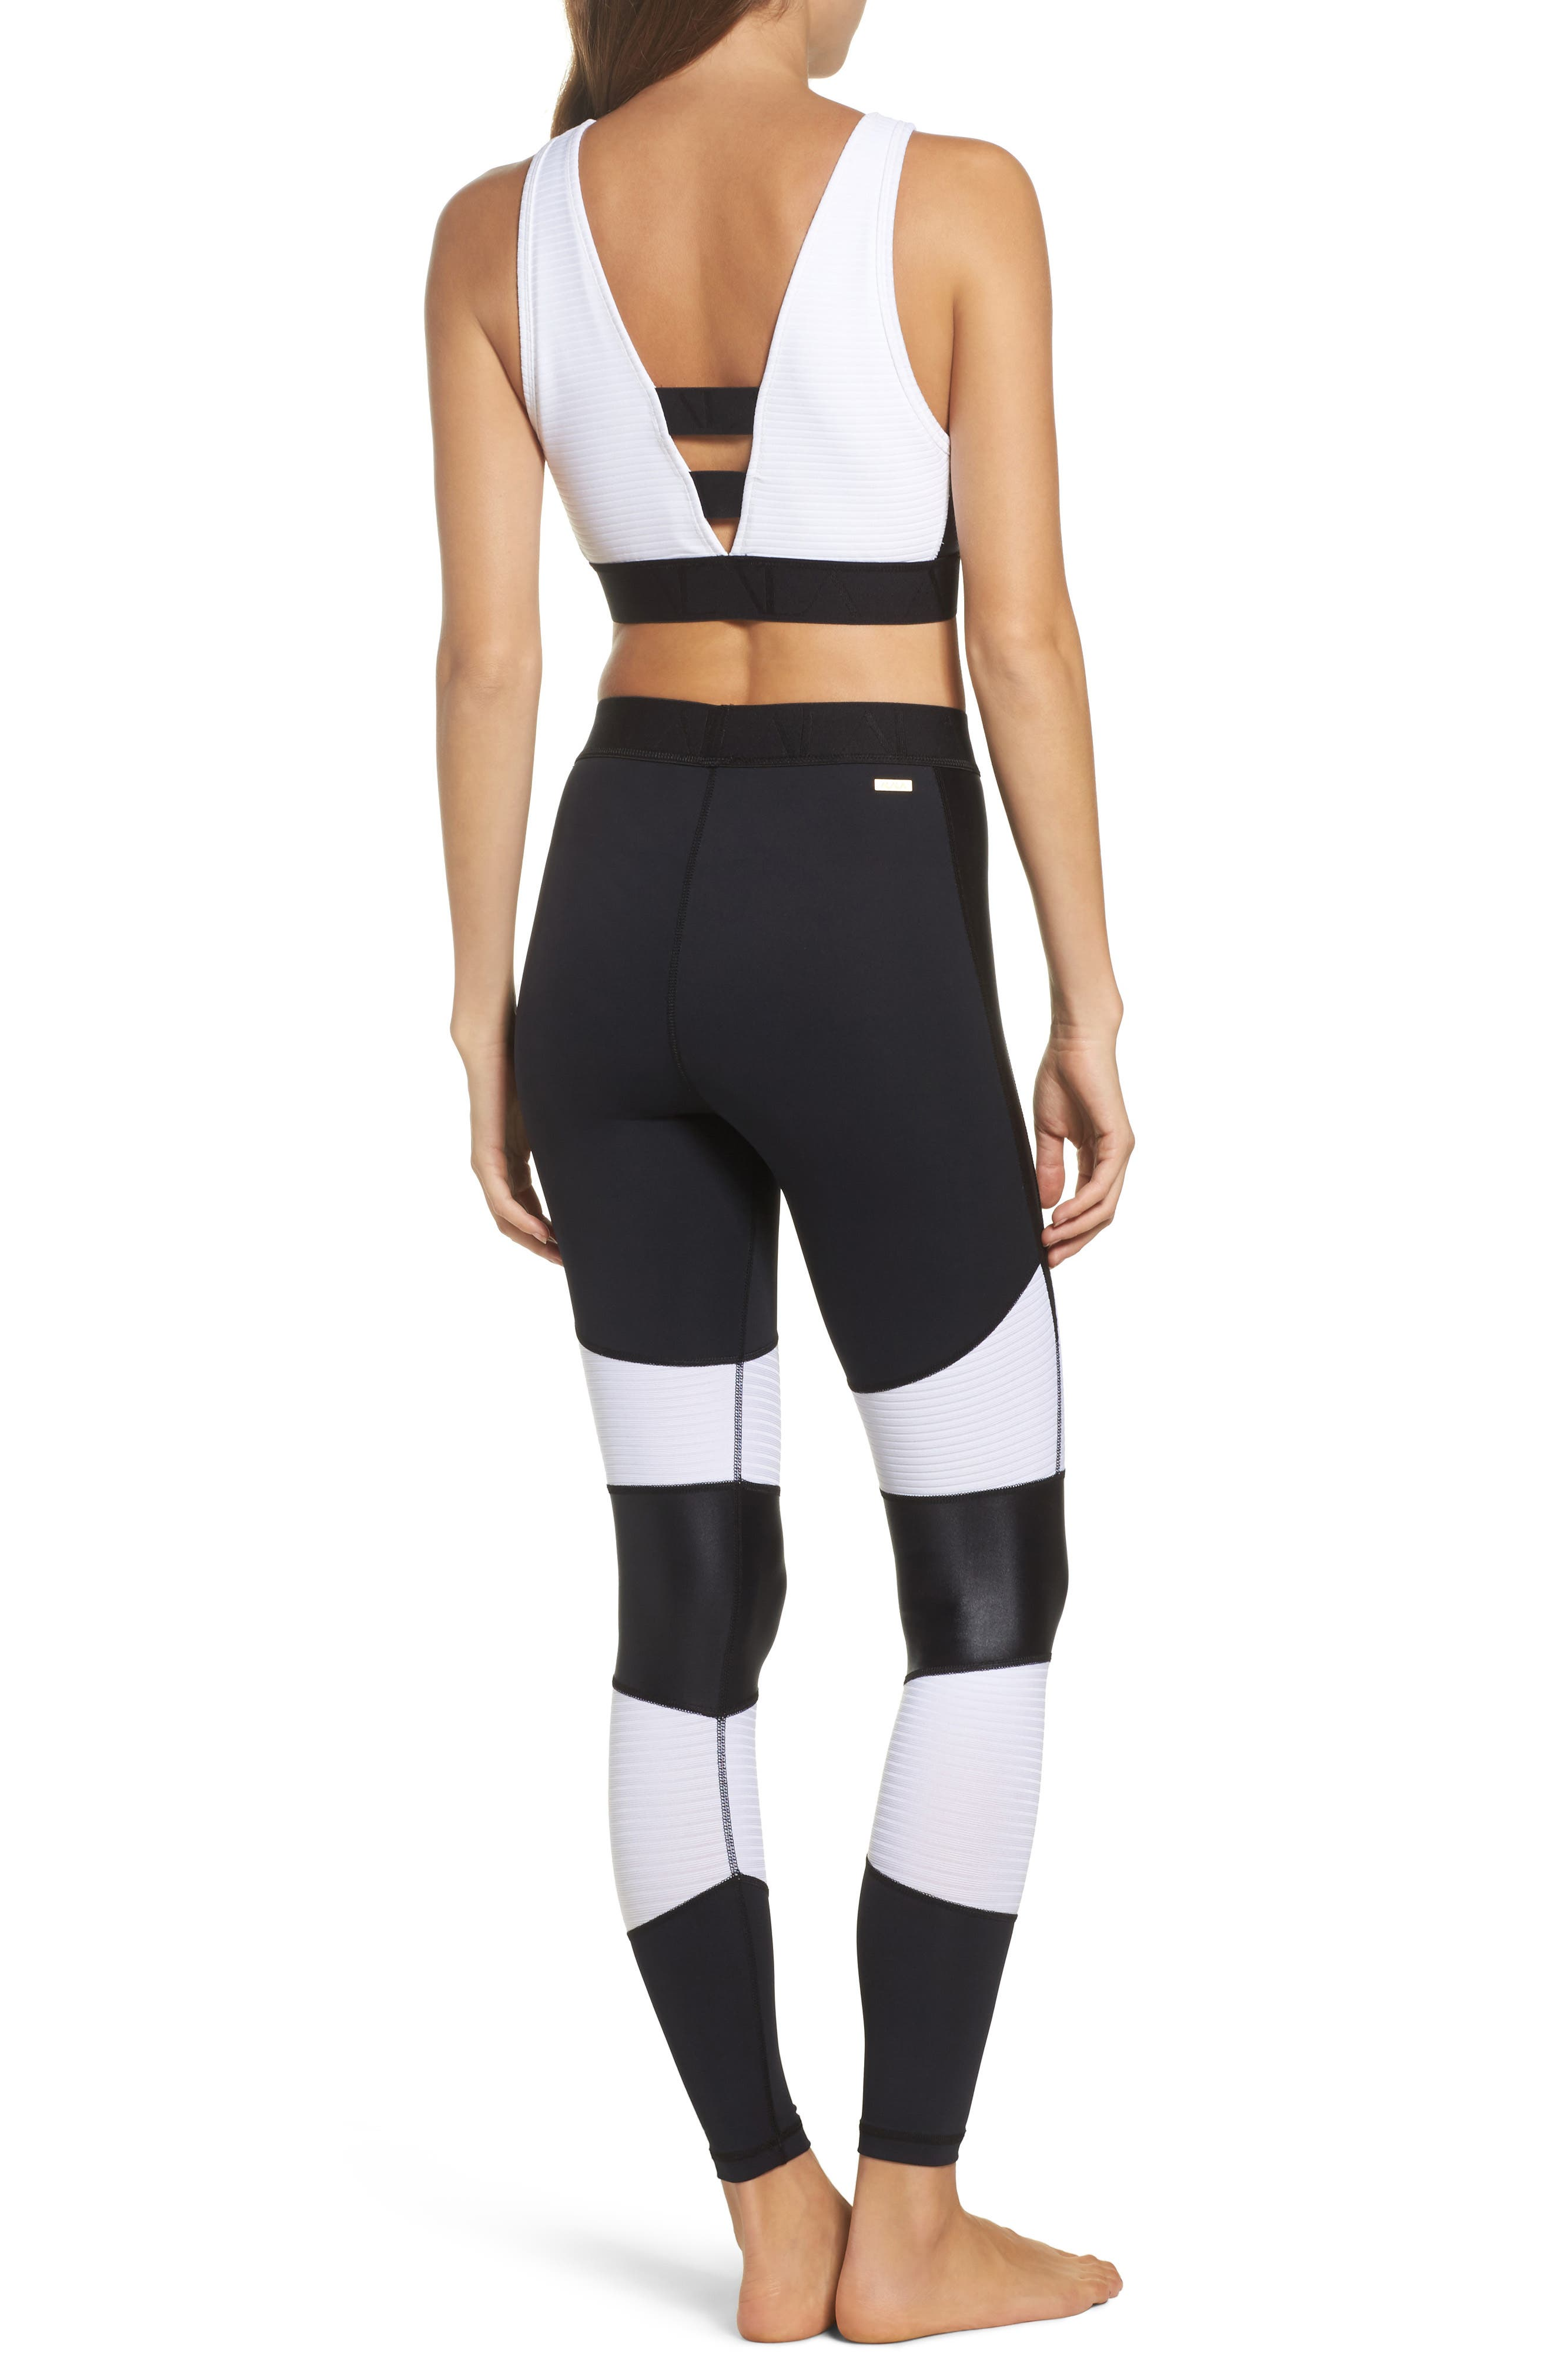 Harley Tights,                             Alternate thumbnail 9, color,                             White